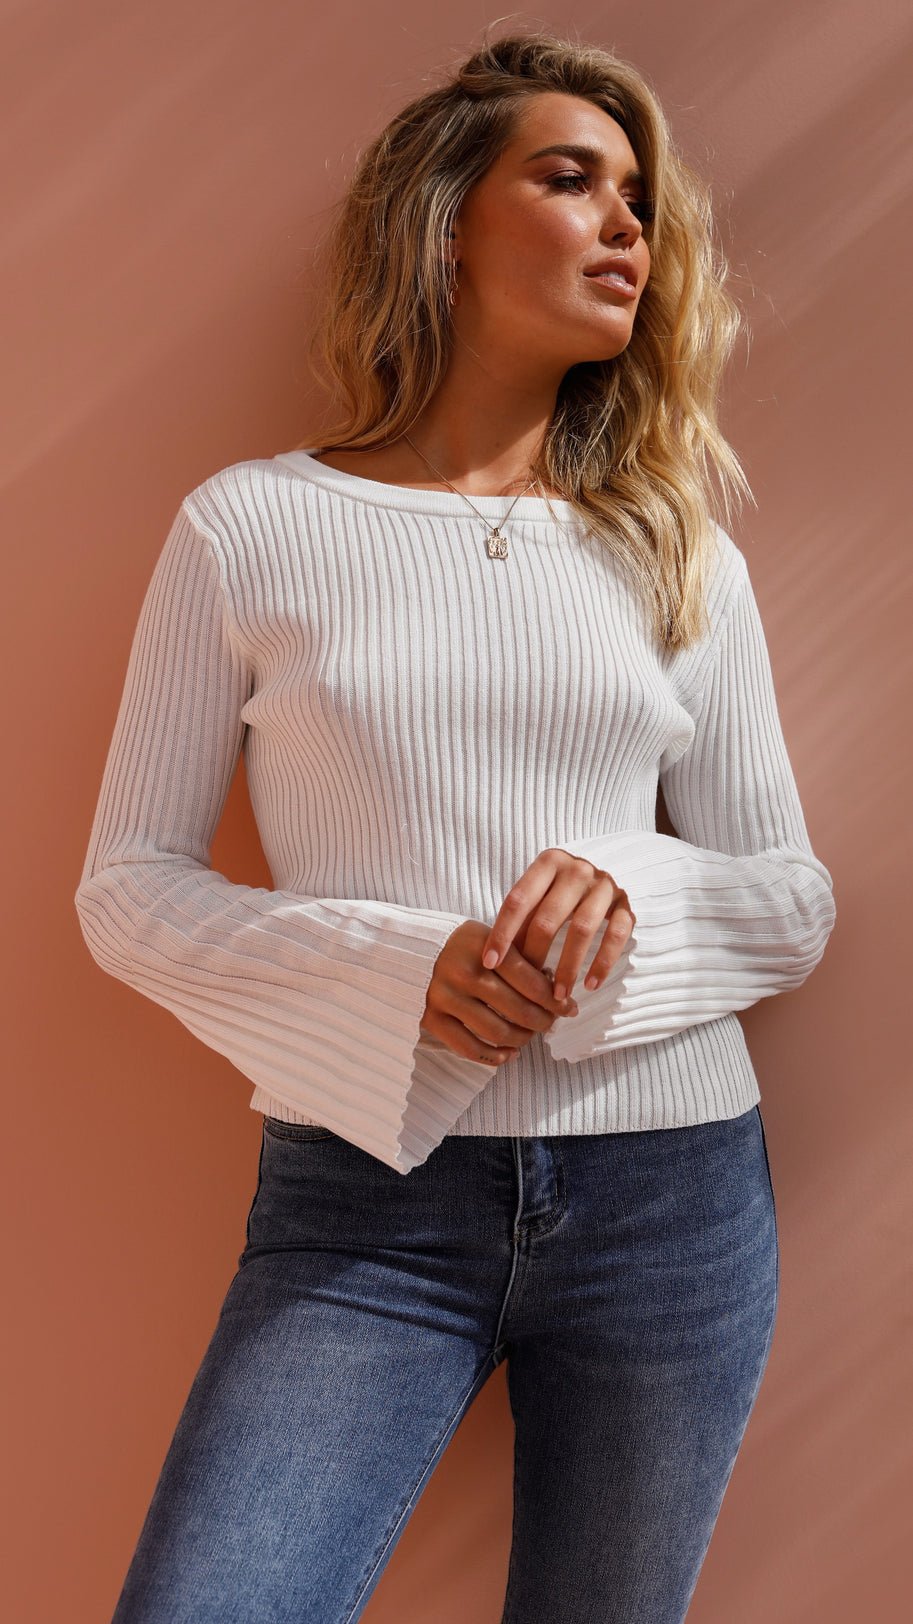 Rhapsody Knit Top - White